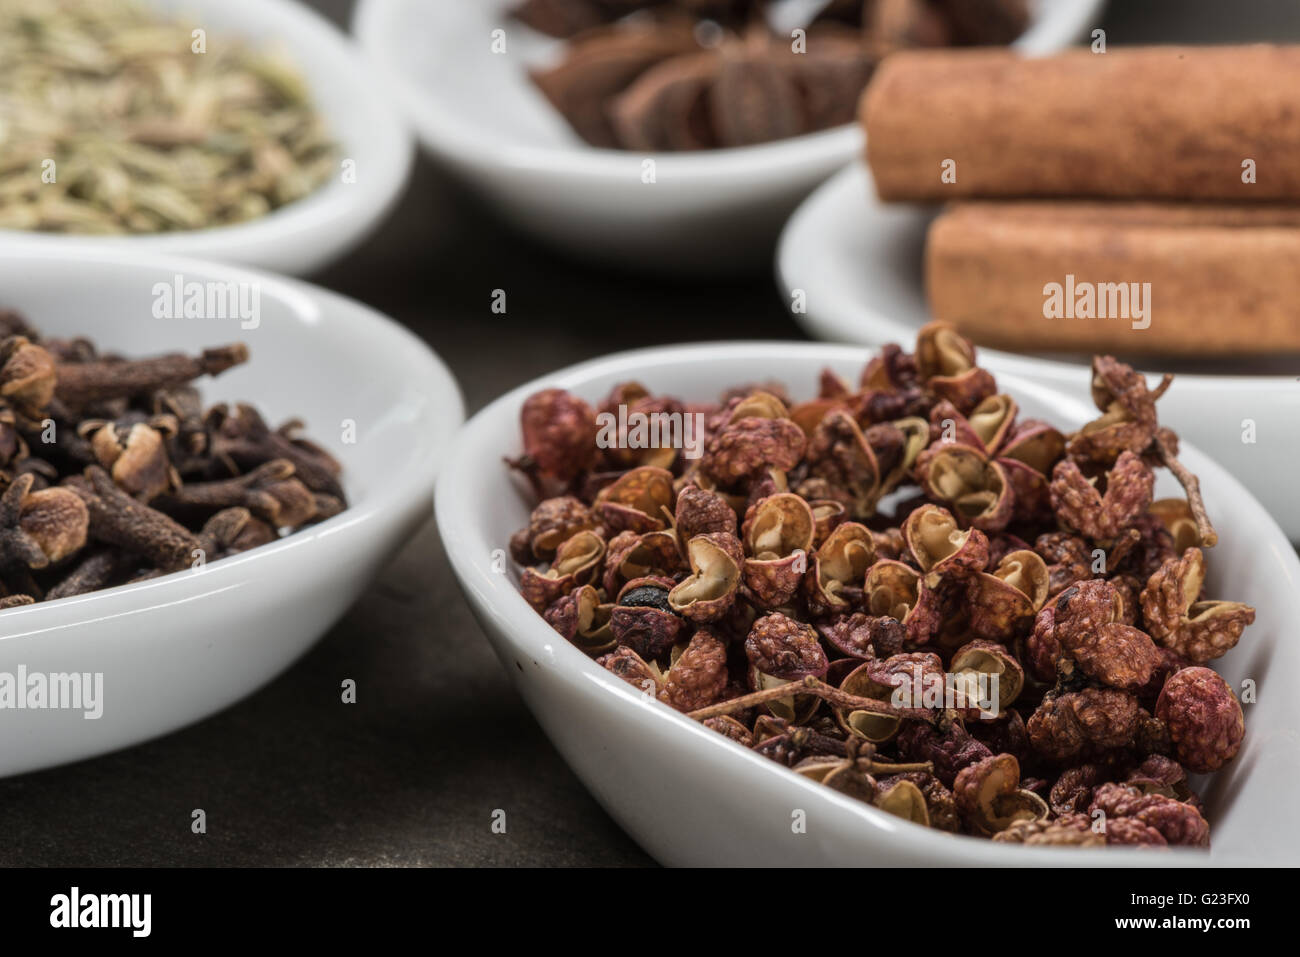 Szechuan Peppercorns in White Spoon with Chinese five spices in background - Stock Image